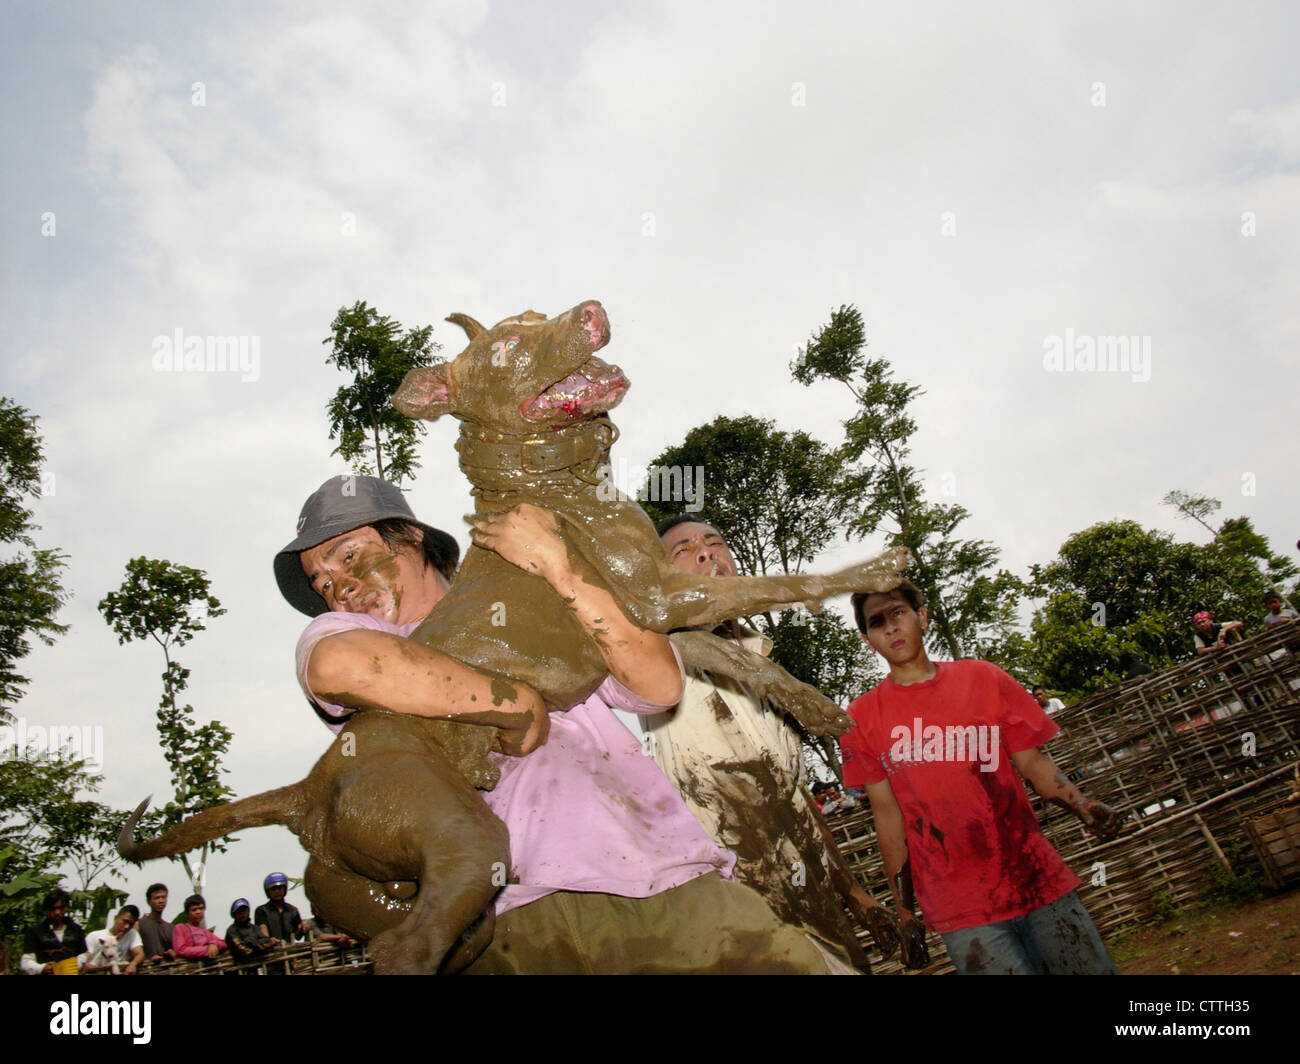 An owner carries his attack-dog out of a public arena after it has mauled a wild pig during a boar-baiting contest - Stock Image